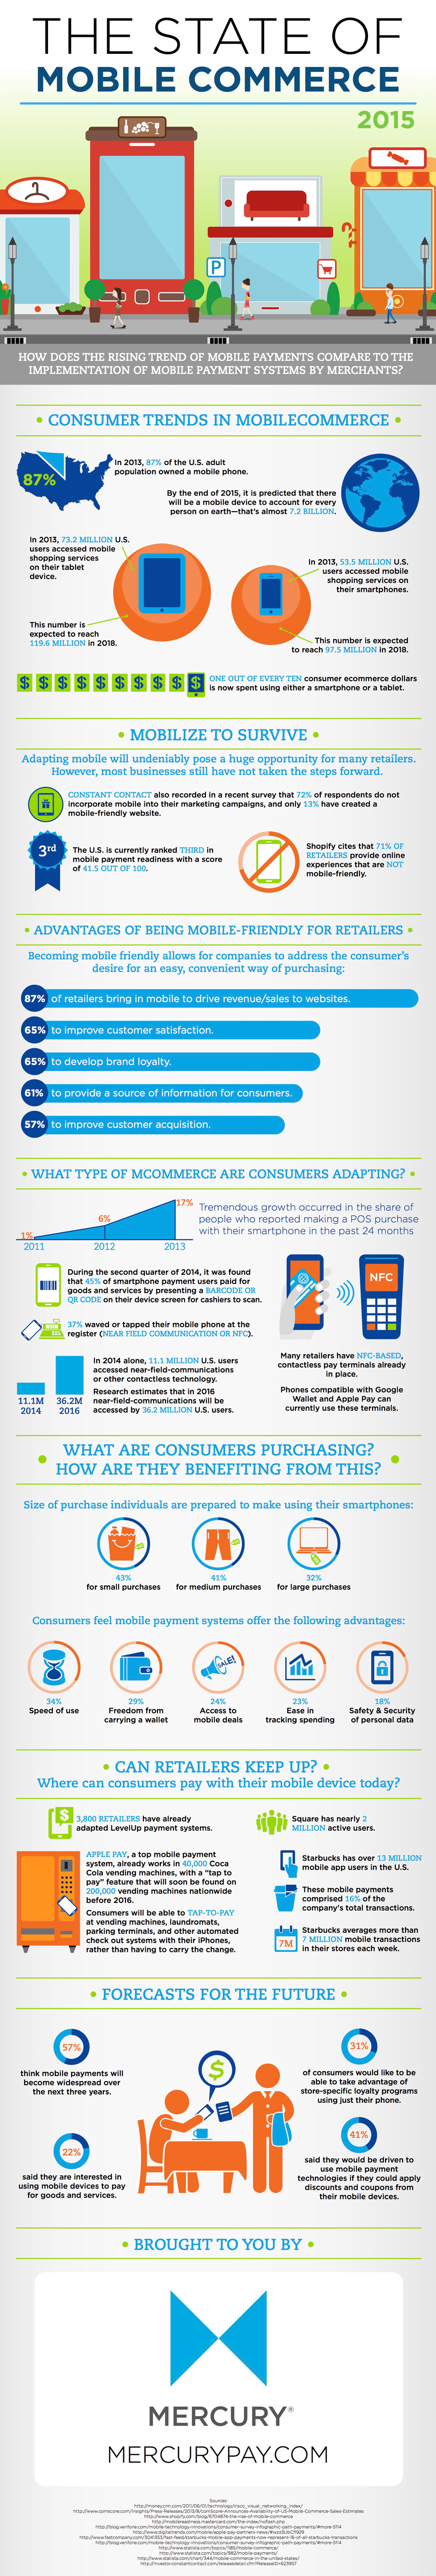 The State of Mobile Commerce